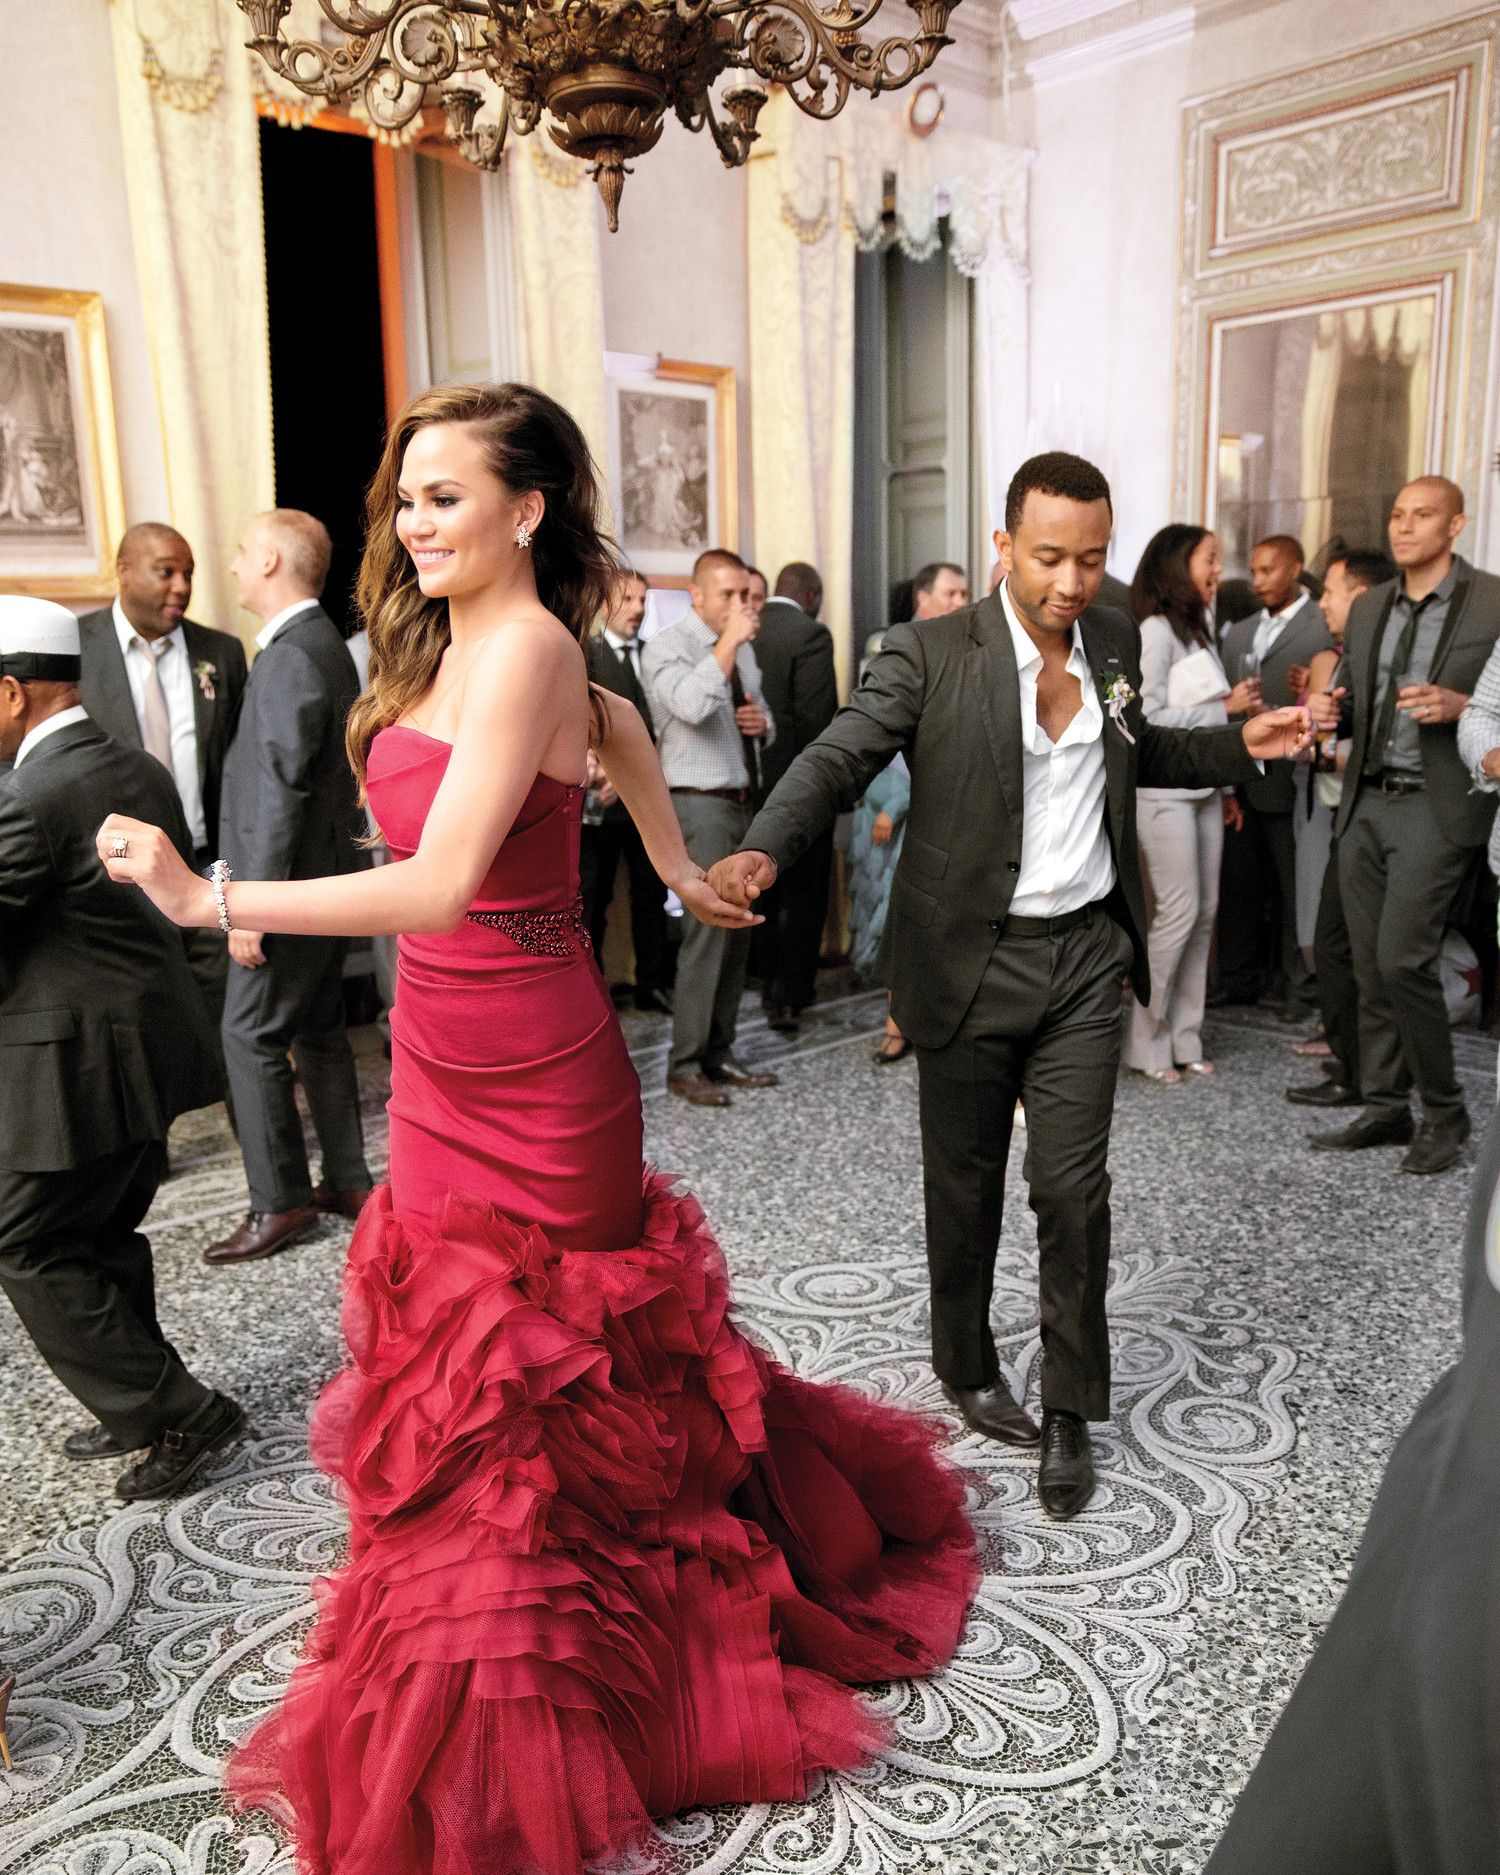 33 Ways To Wear Your Hair Down For Your Wedding Chrissy Teigen Wedding Dress Red Wedding Dresses Nontraditional Wedding Dress